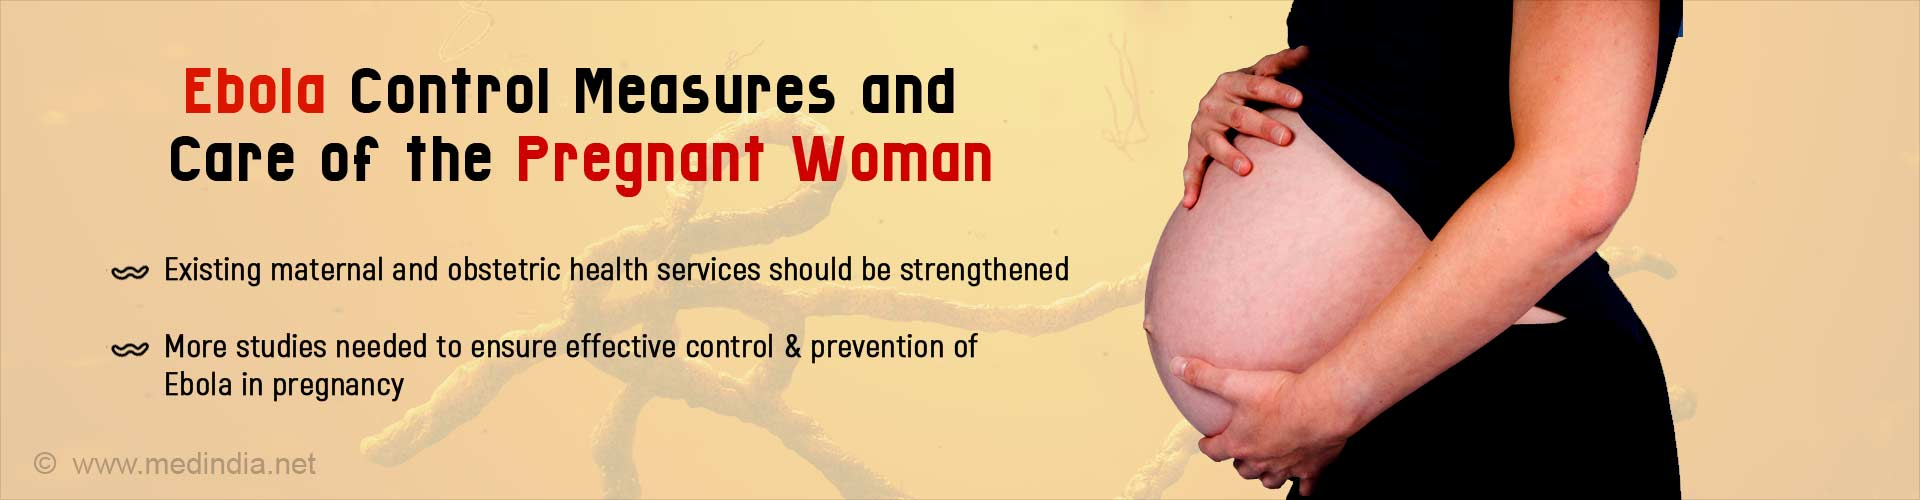 Addressing Pregnancy Related Concerns During Ebola Outbreaks